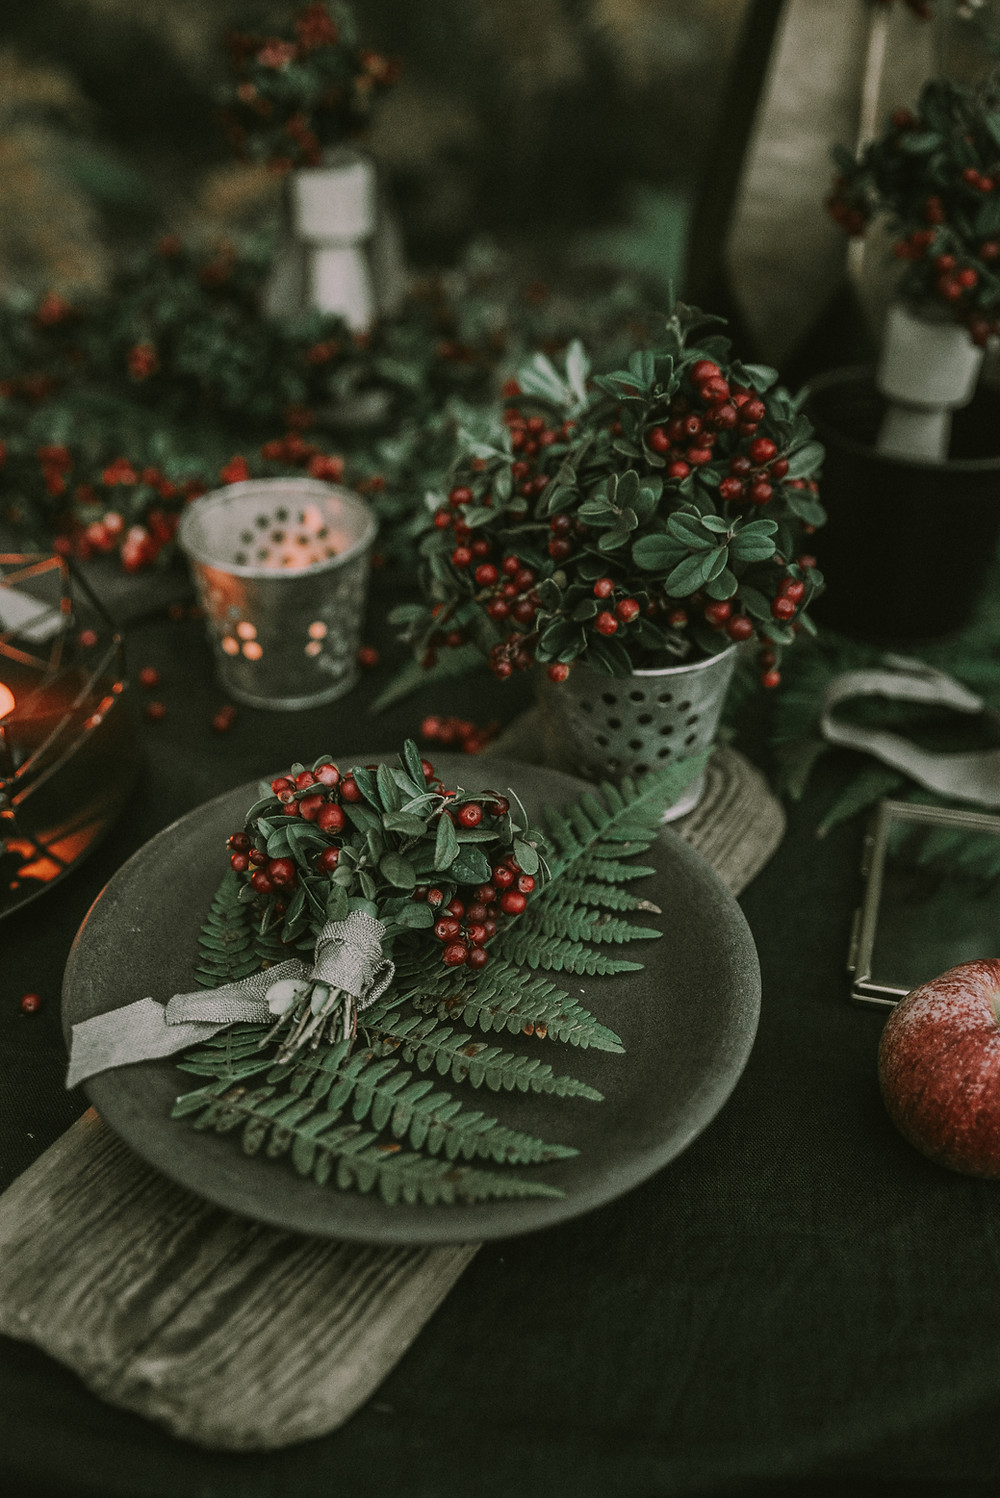 Berries, Ferns, and rustic wedding decor